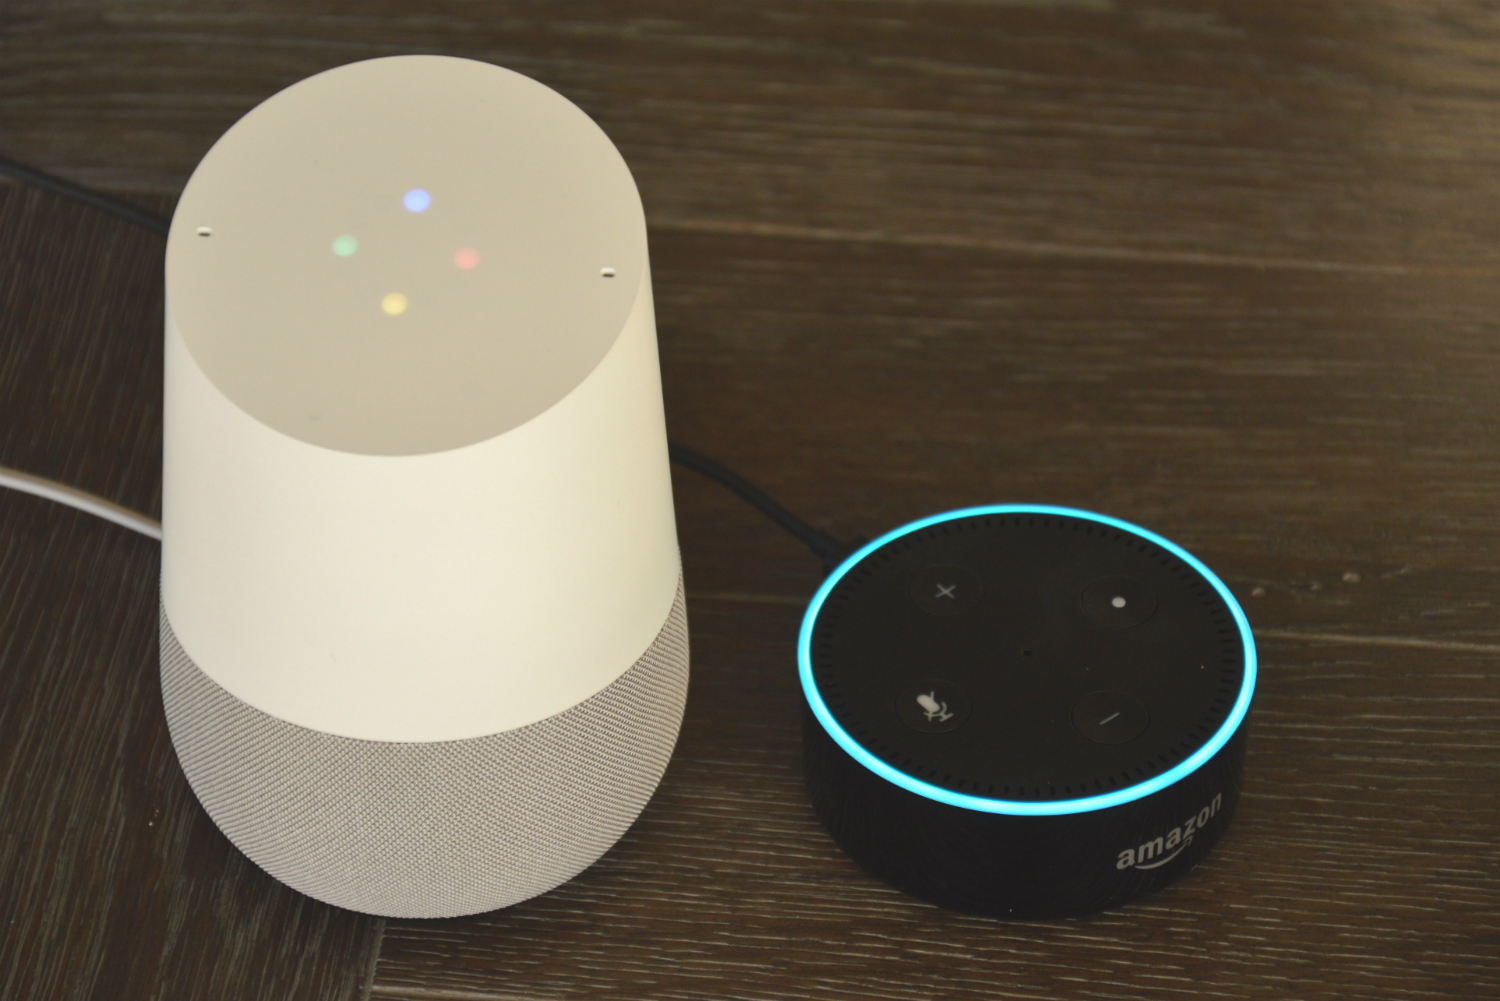 Amazon S Alexa And Google Home Answer Questions Esist